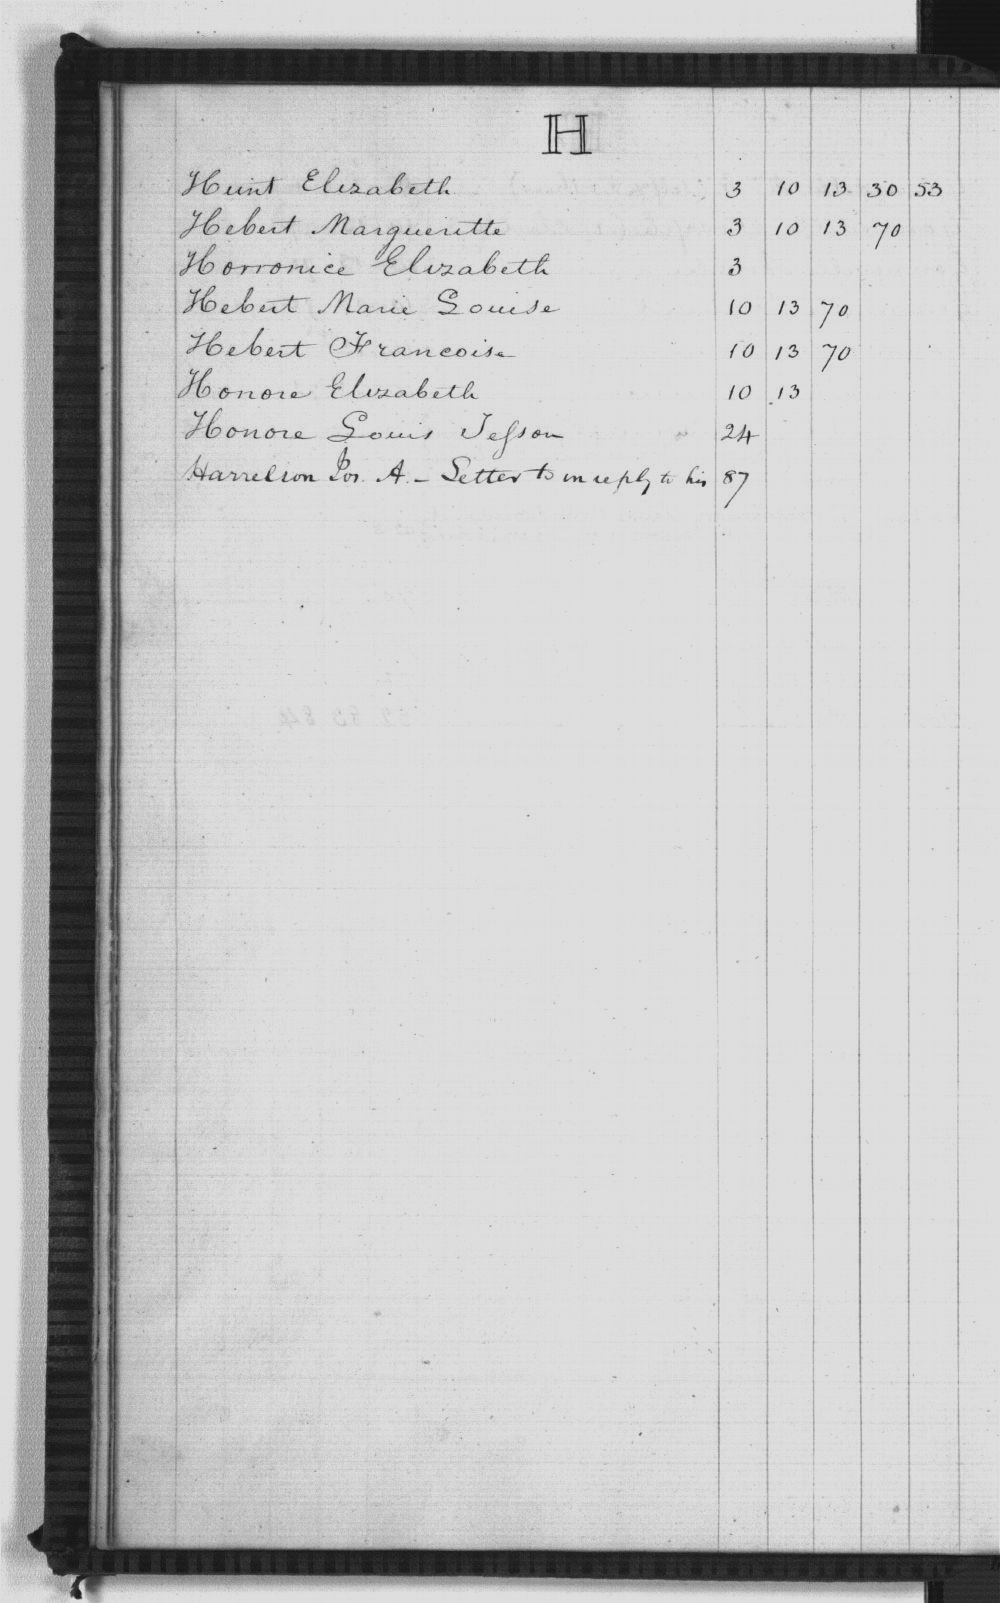 United States Office of Indian Affairs, Central Superintendency, St. Louis, Missouri. Volume 32, Claims under 1824 Sac and Fox Treaty - Index H